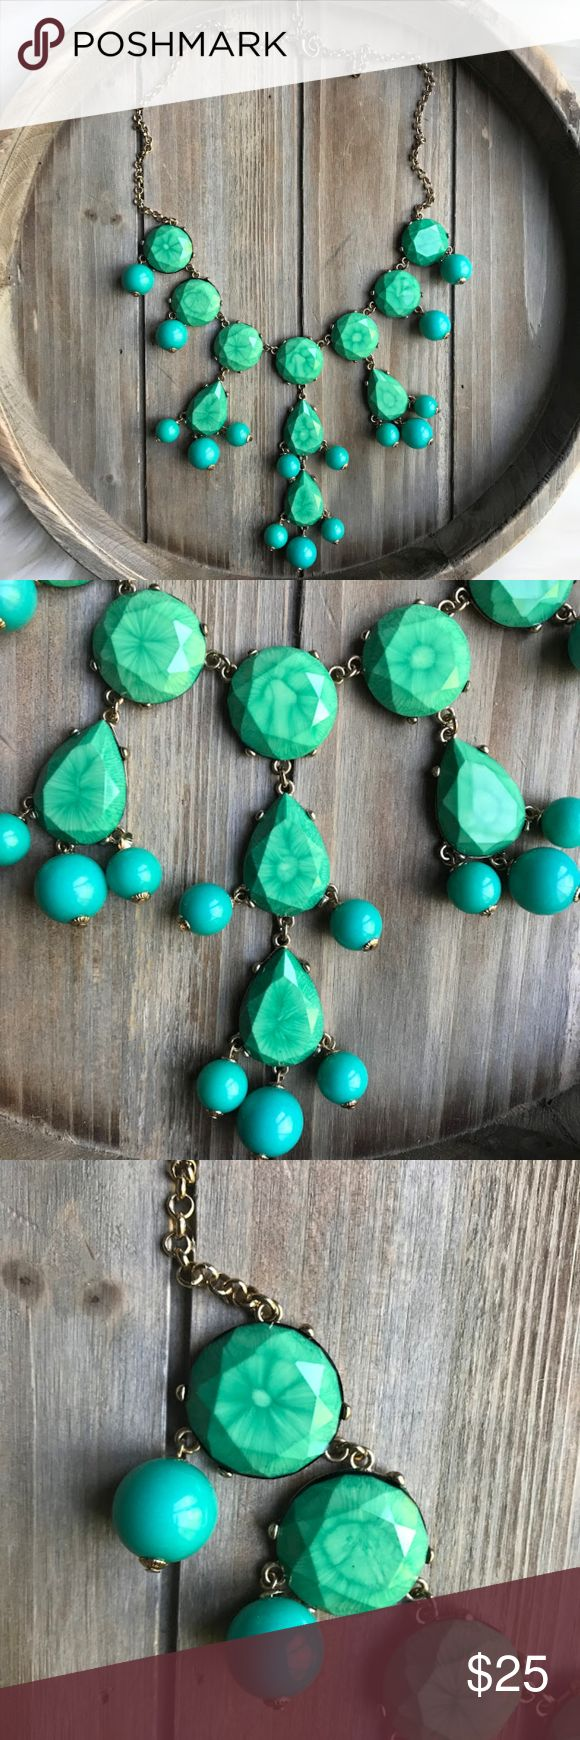 green turquoise bubble necklace- unique stone! Condition: Great (some discoloration on round charm hanging from clasp- see last picture) Color: Green turquoise stone & gold chain  gift with purchase! Jewelry Necklaces